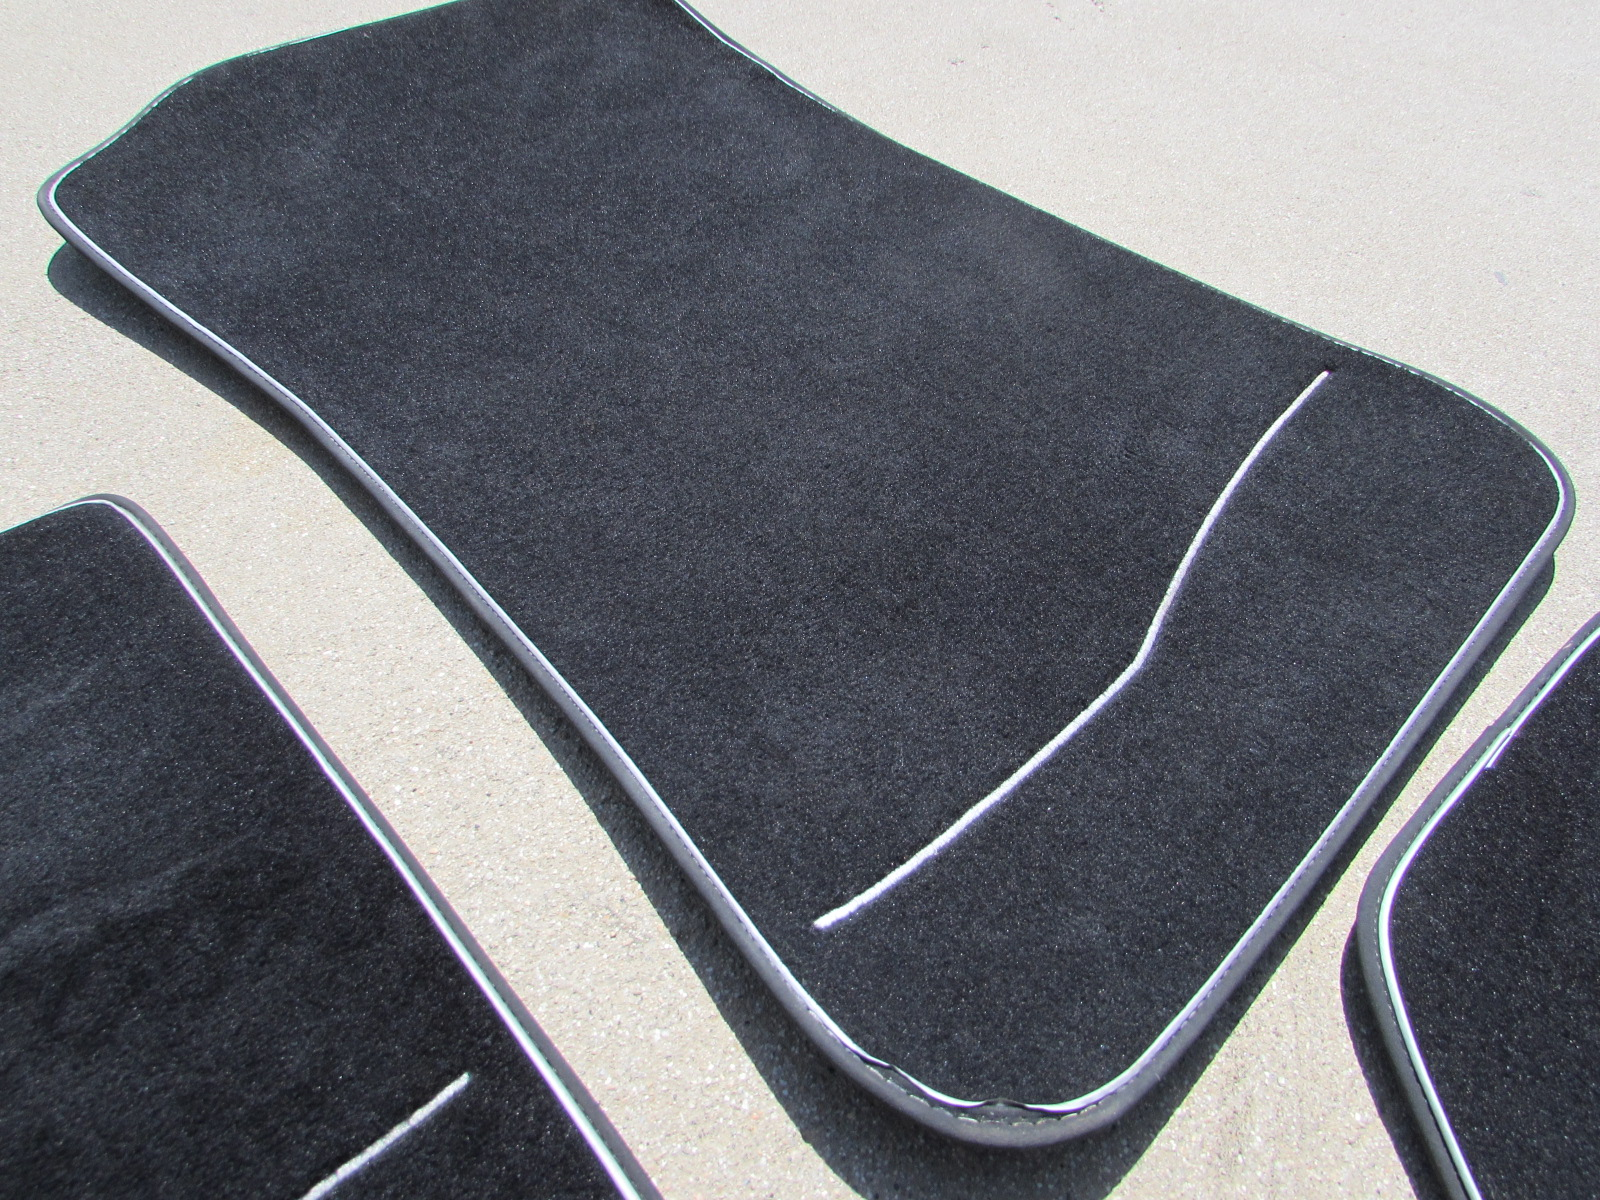 car bmw luxury branded cars new zealand of excellent mats powerful floor